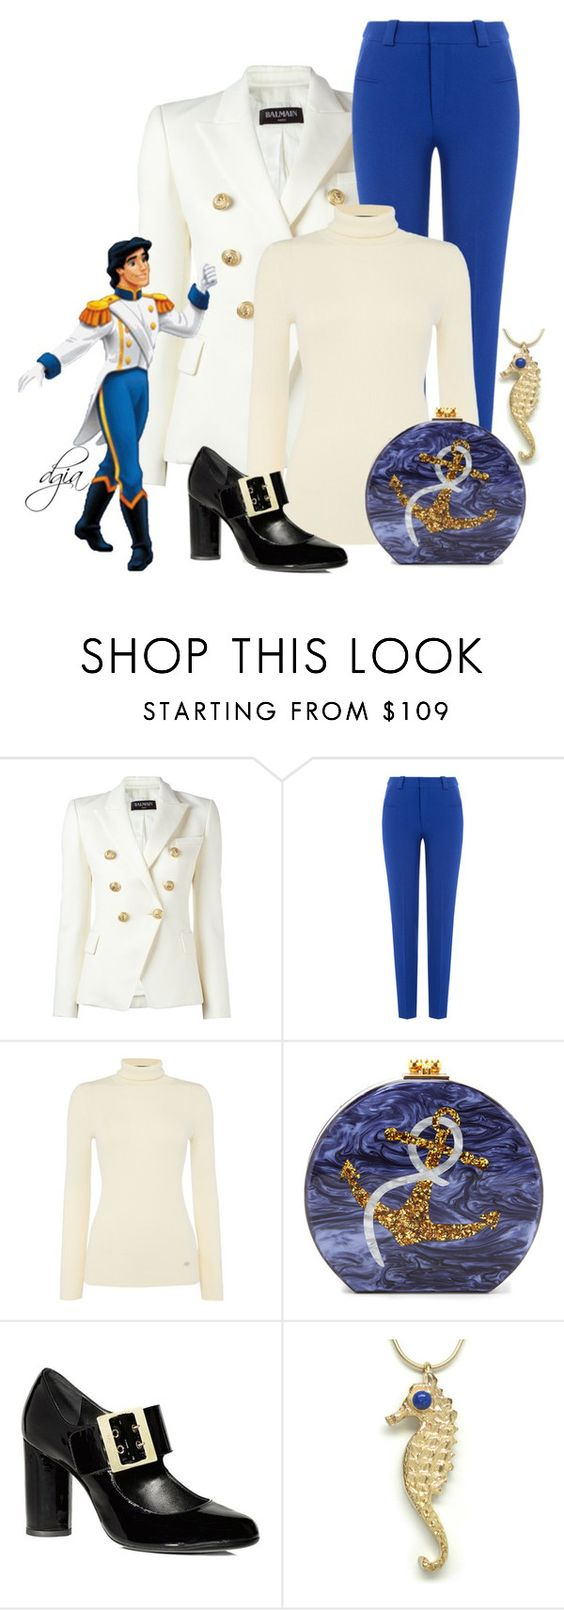 """Prince Eric"" by dgia ❤ liked on Polyvore featuring Balmain, Roland Mouret, Lauren Ralph Lauren, Edie Parker, Lanvin and Lazuli"